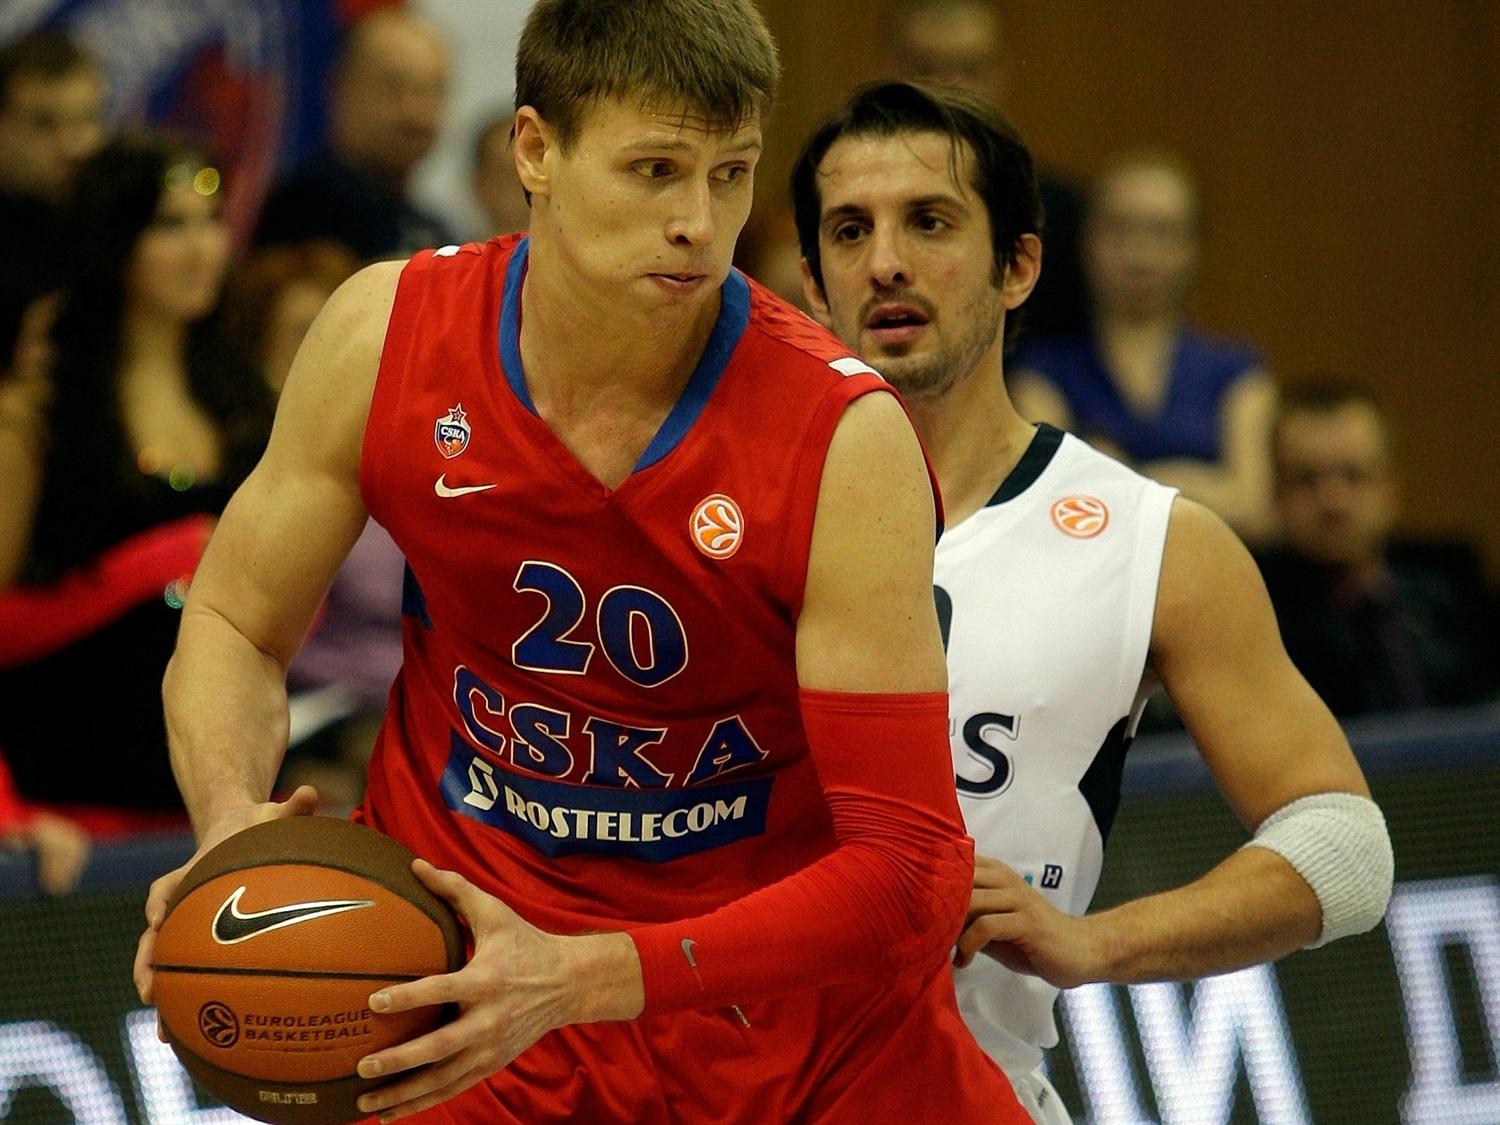 Andrey Vorontsevich - CSKA Moscow - EB10